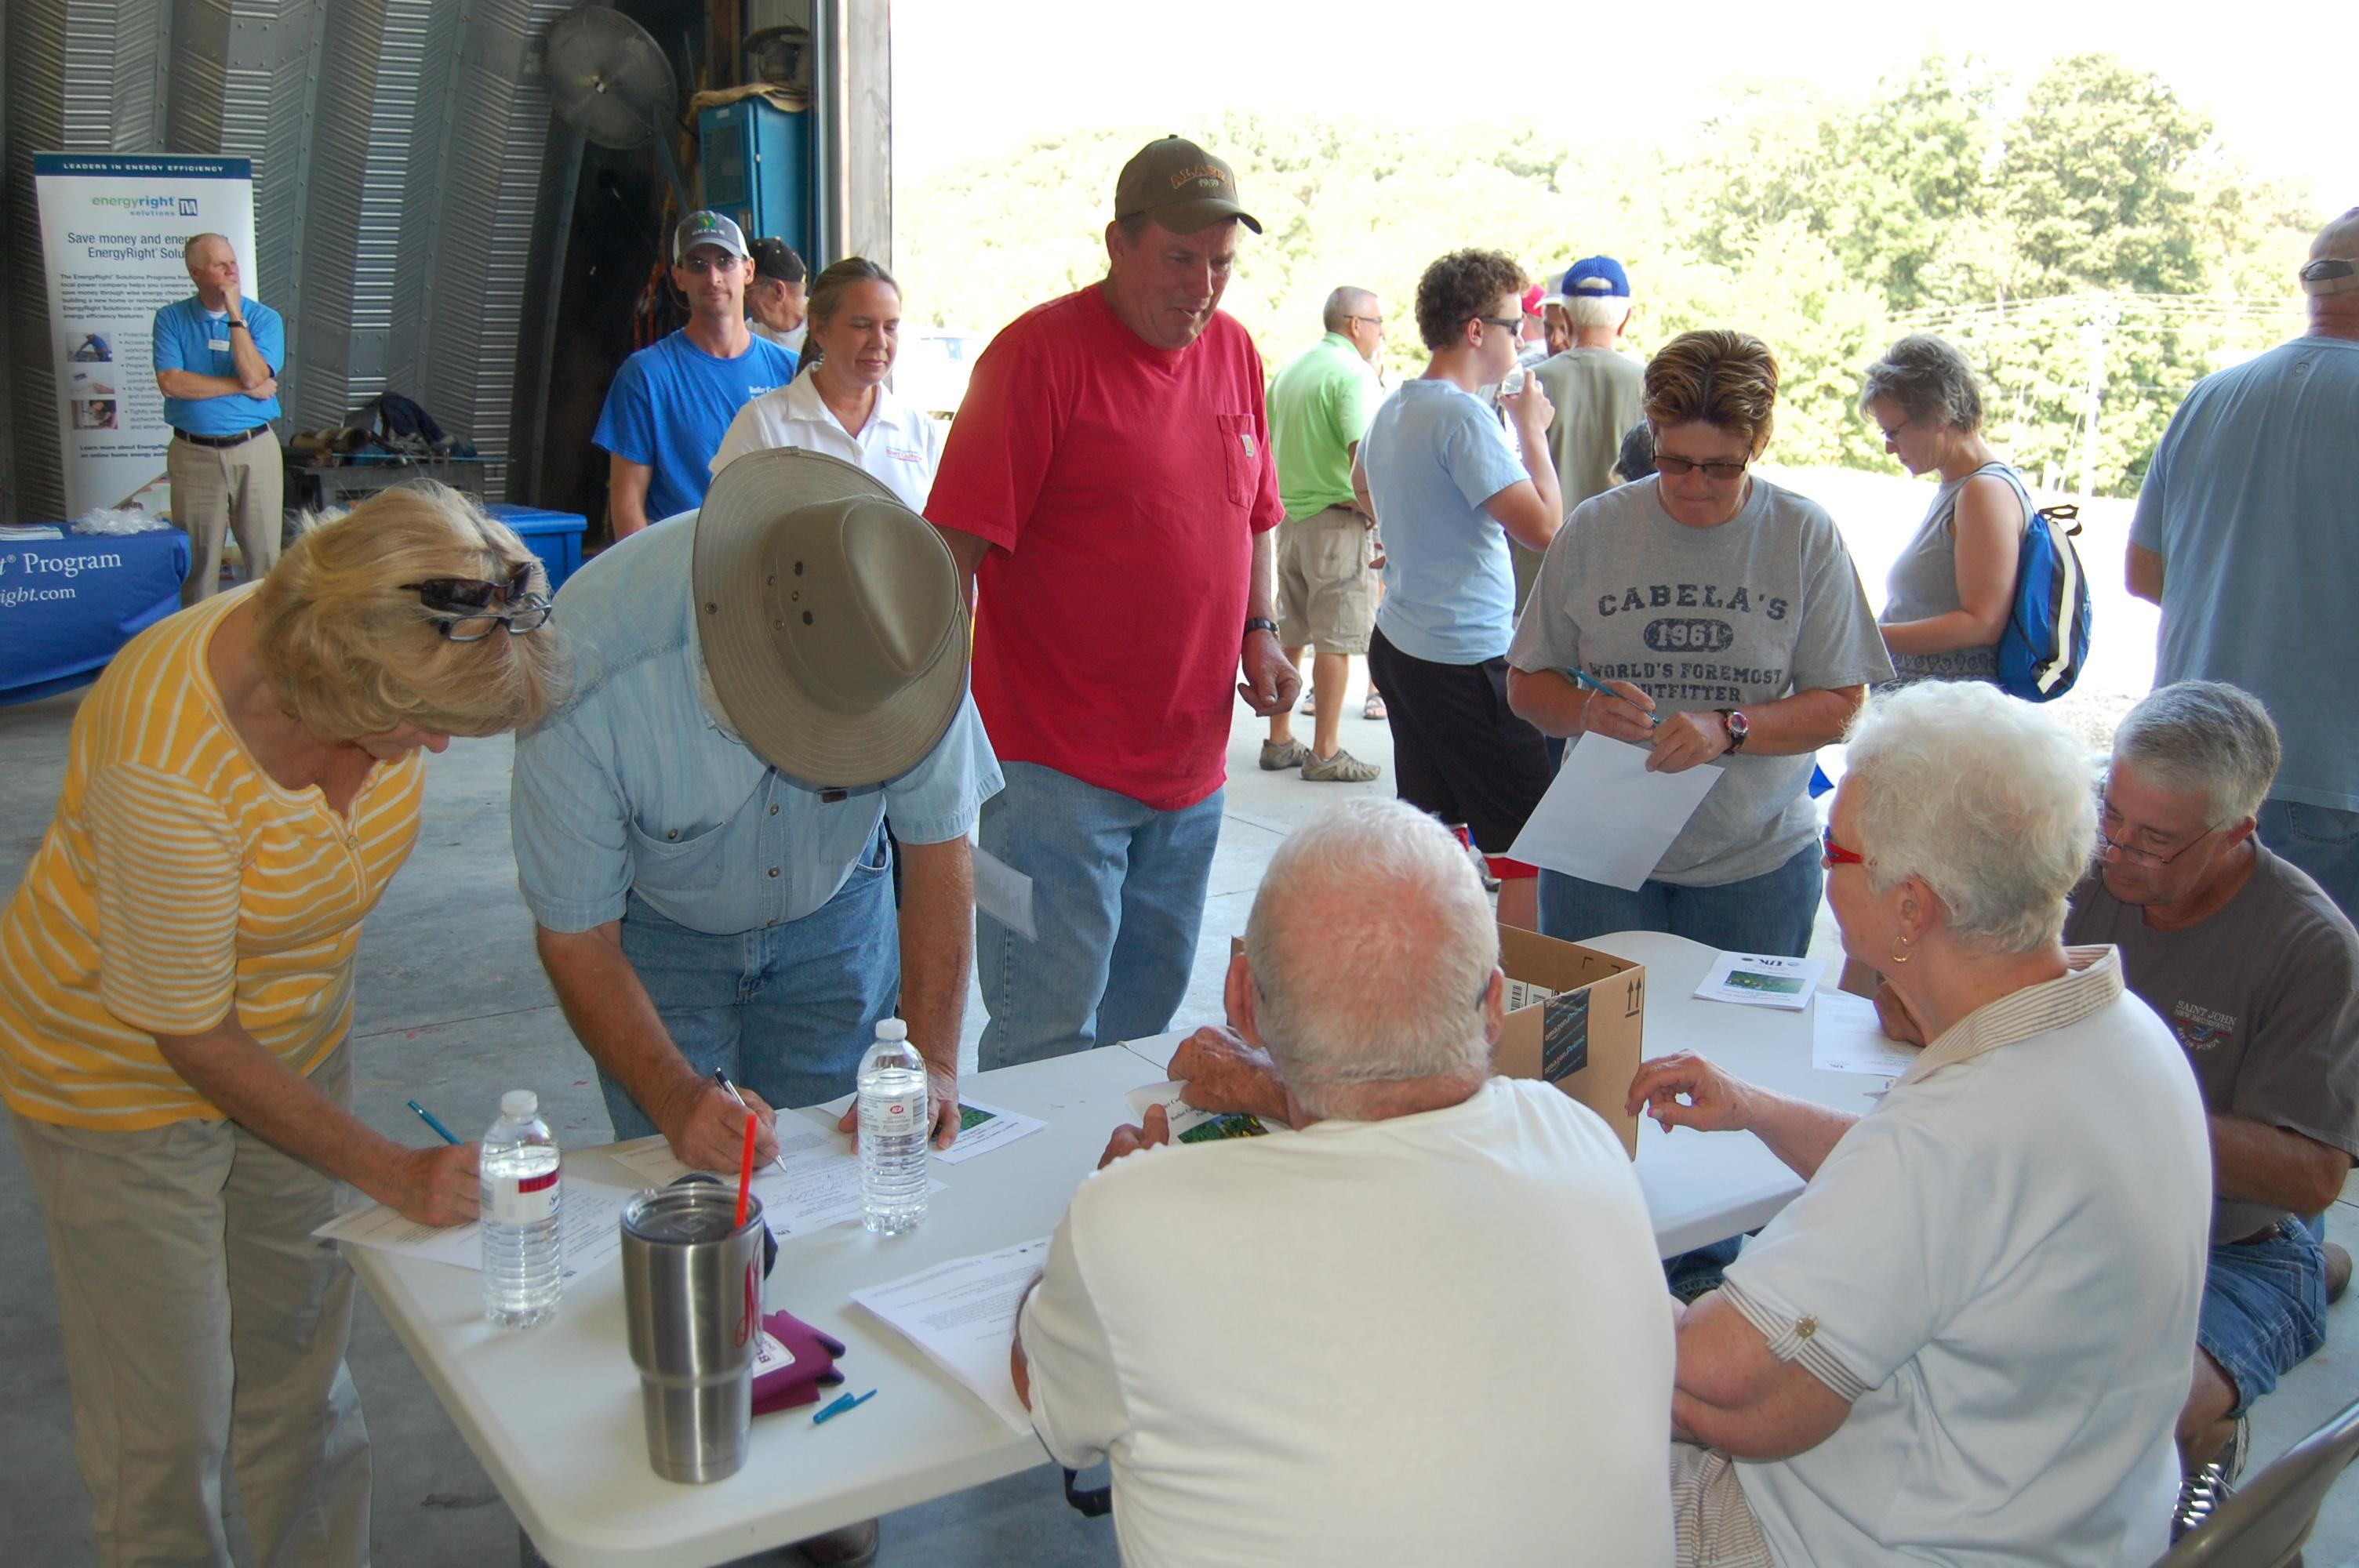 People register for Butler County Extension Field Day